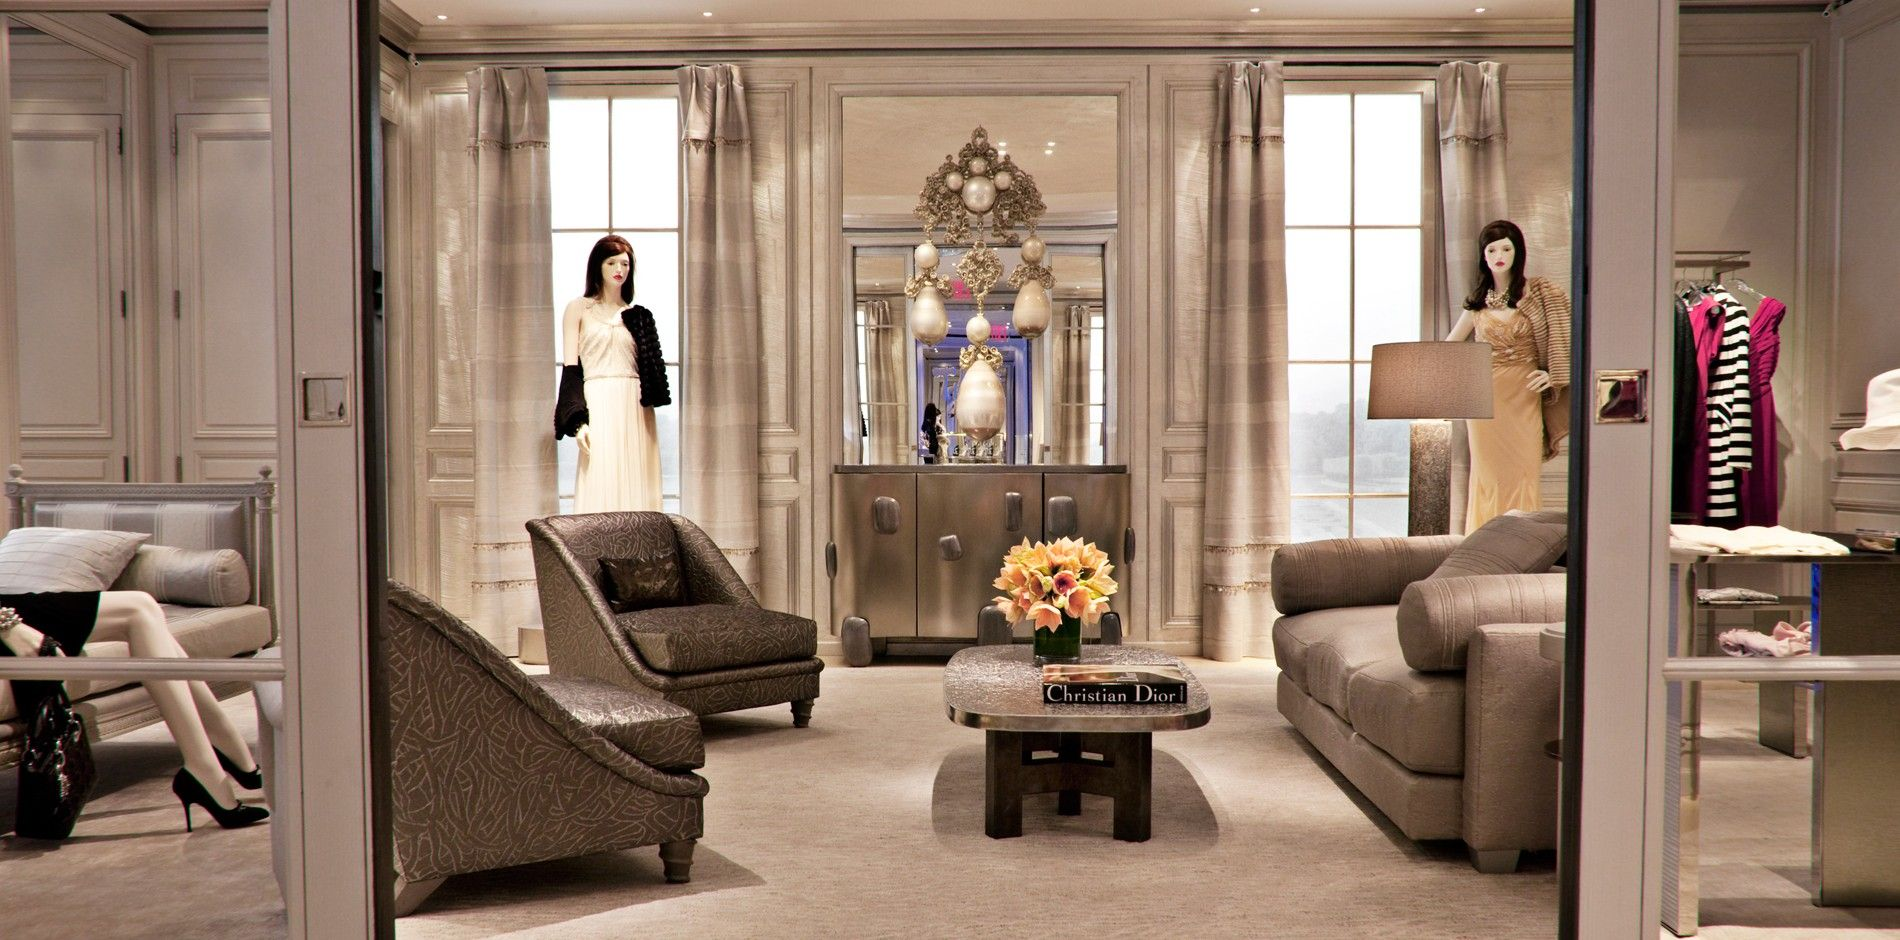 Exclusive Luxury Stores To Discover In New York City in